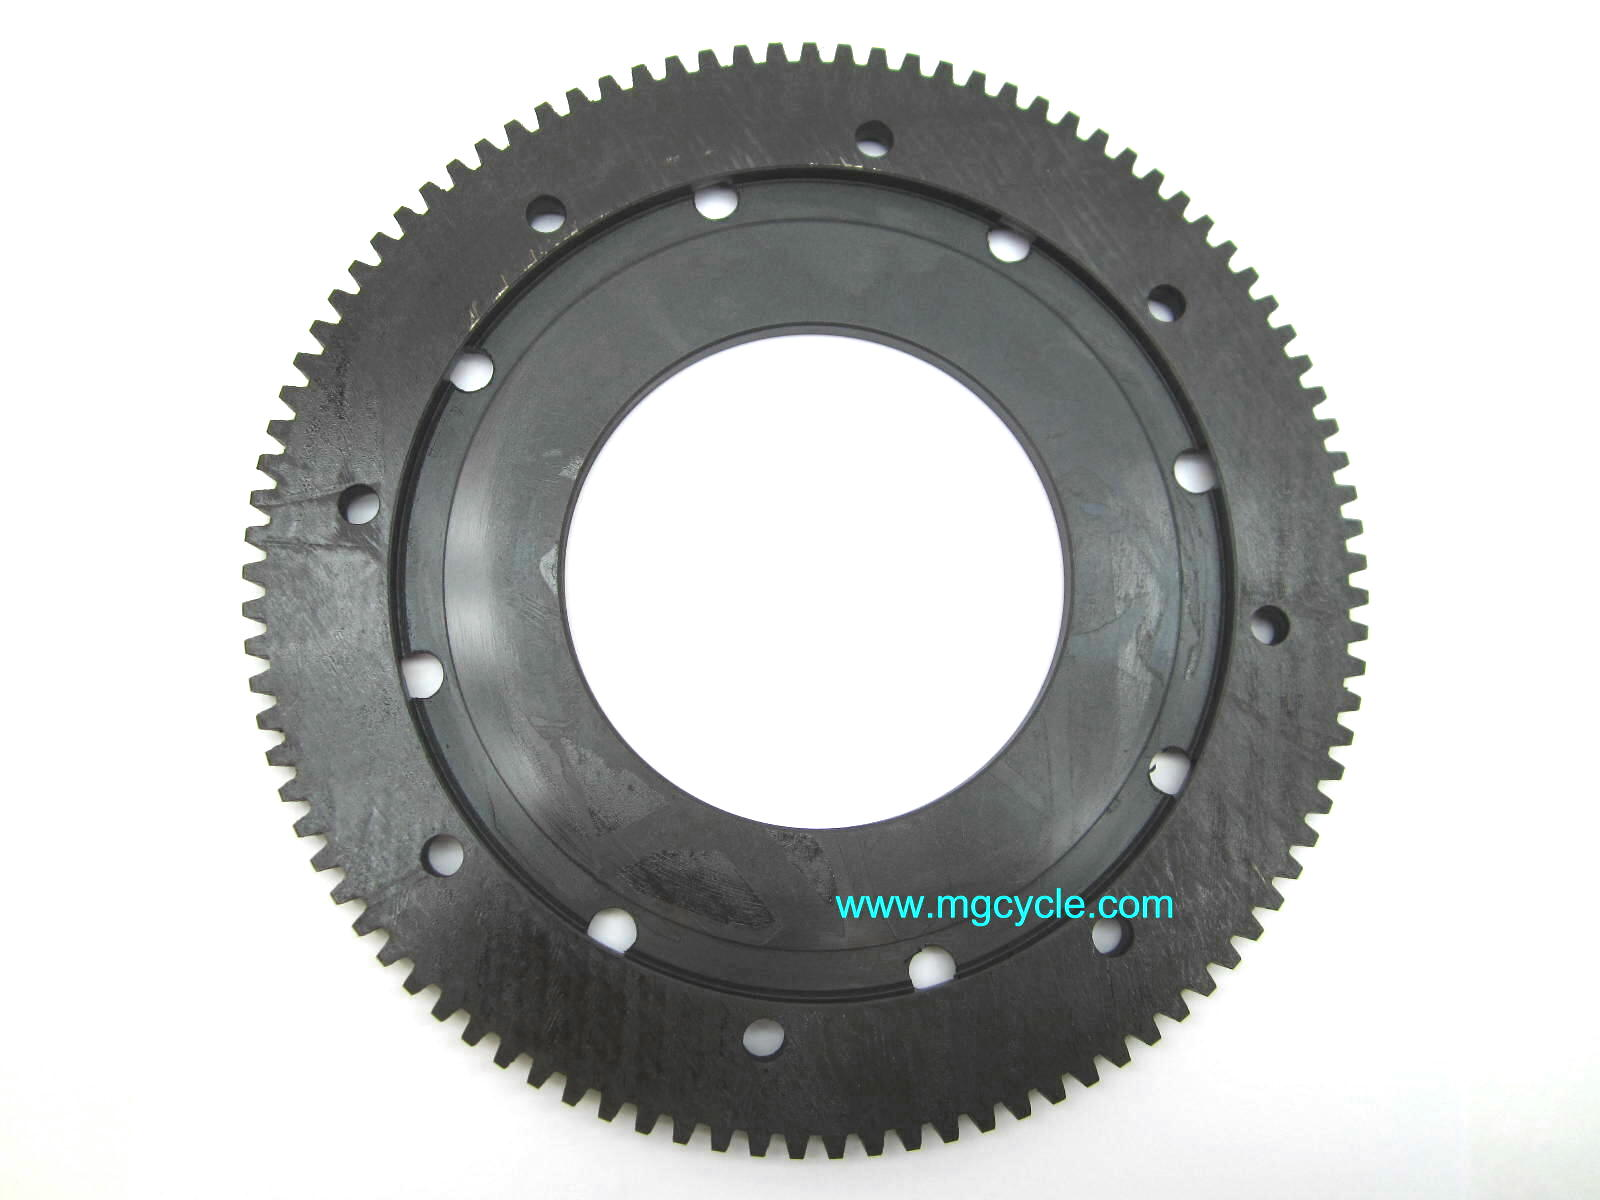 flywheel ring gear, starter ring gear, 4.865 pounds